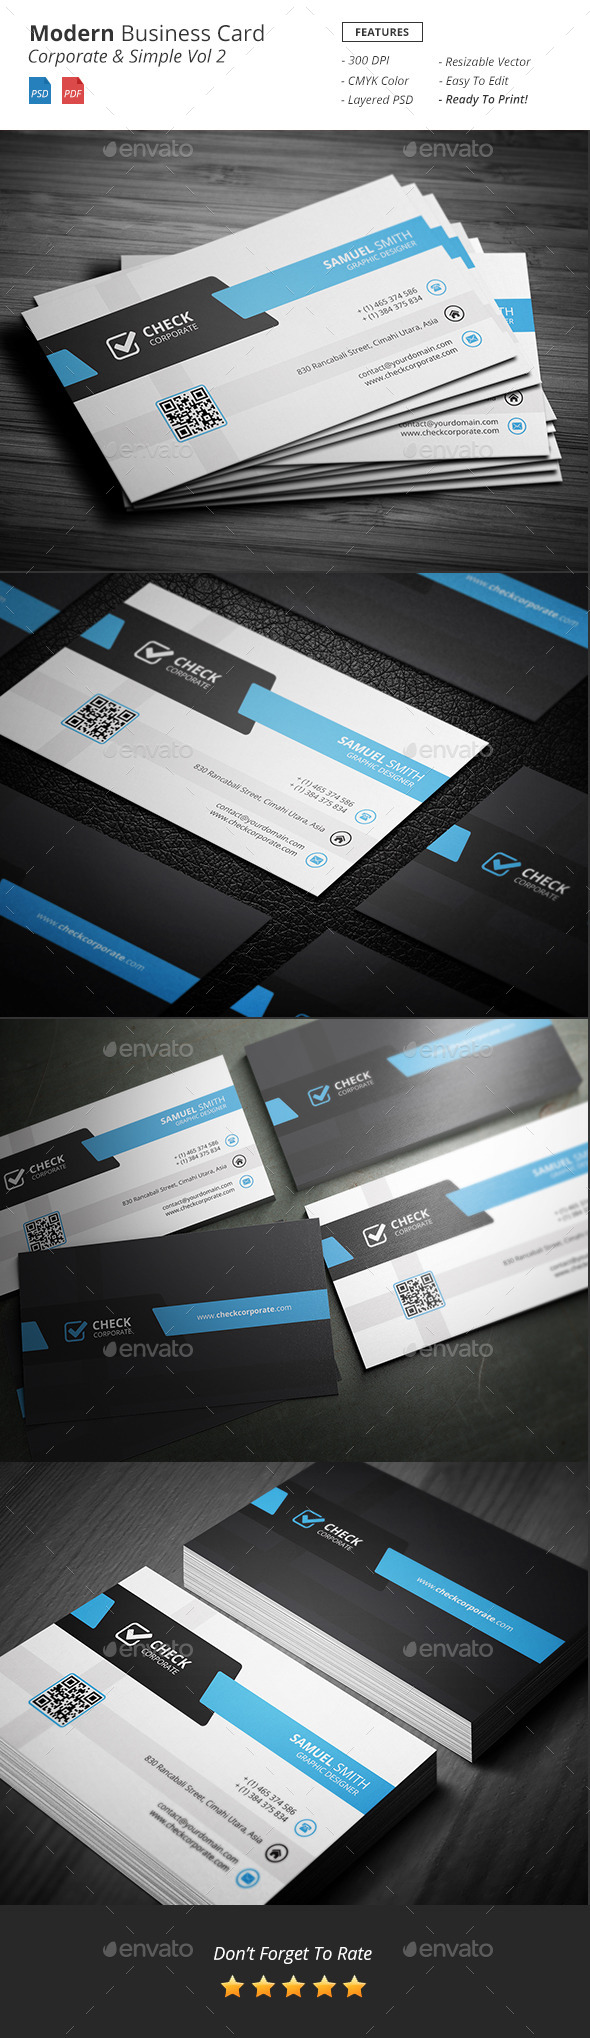 Modern Corporate Business Card Vol 2